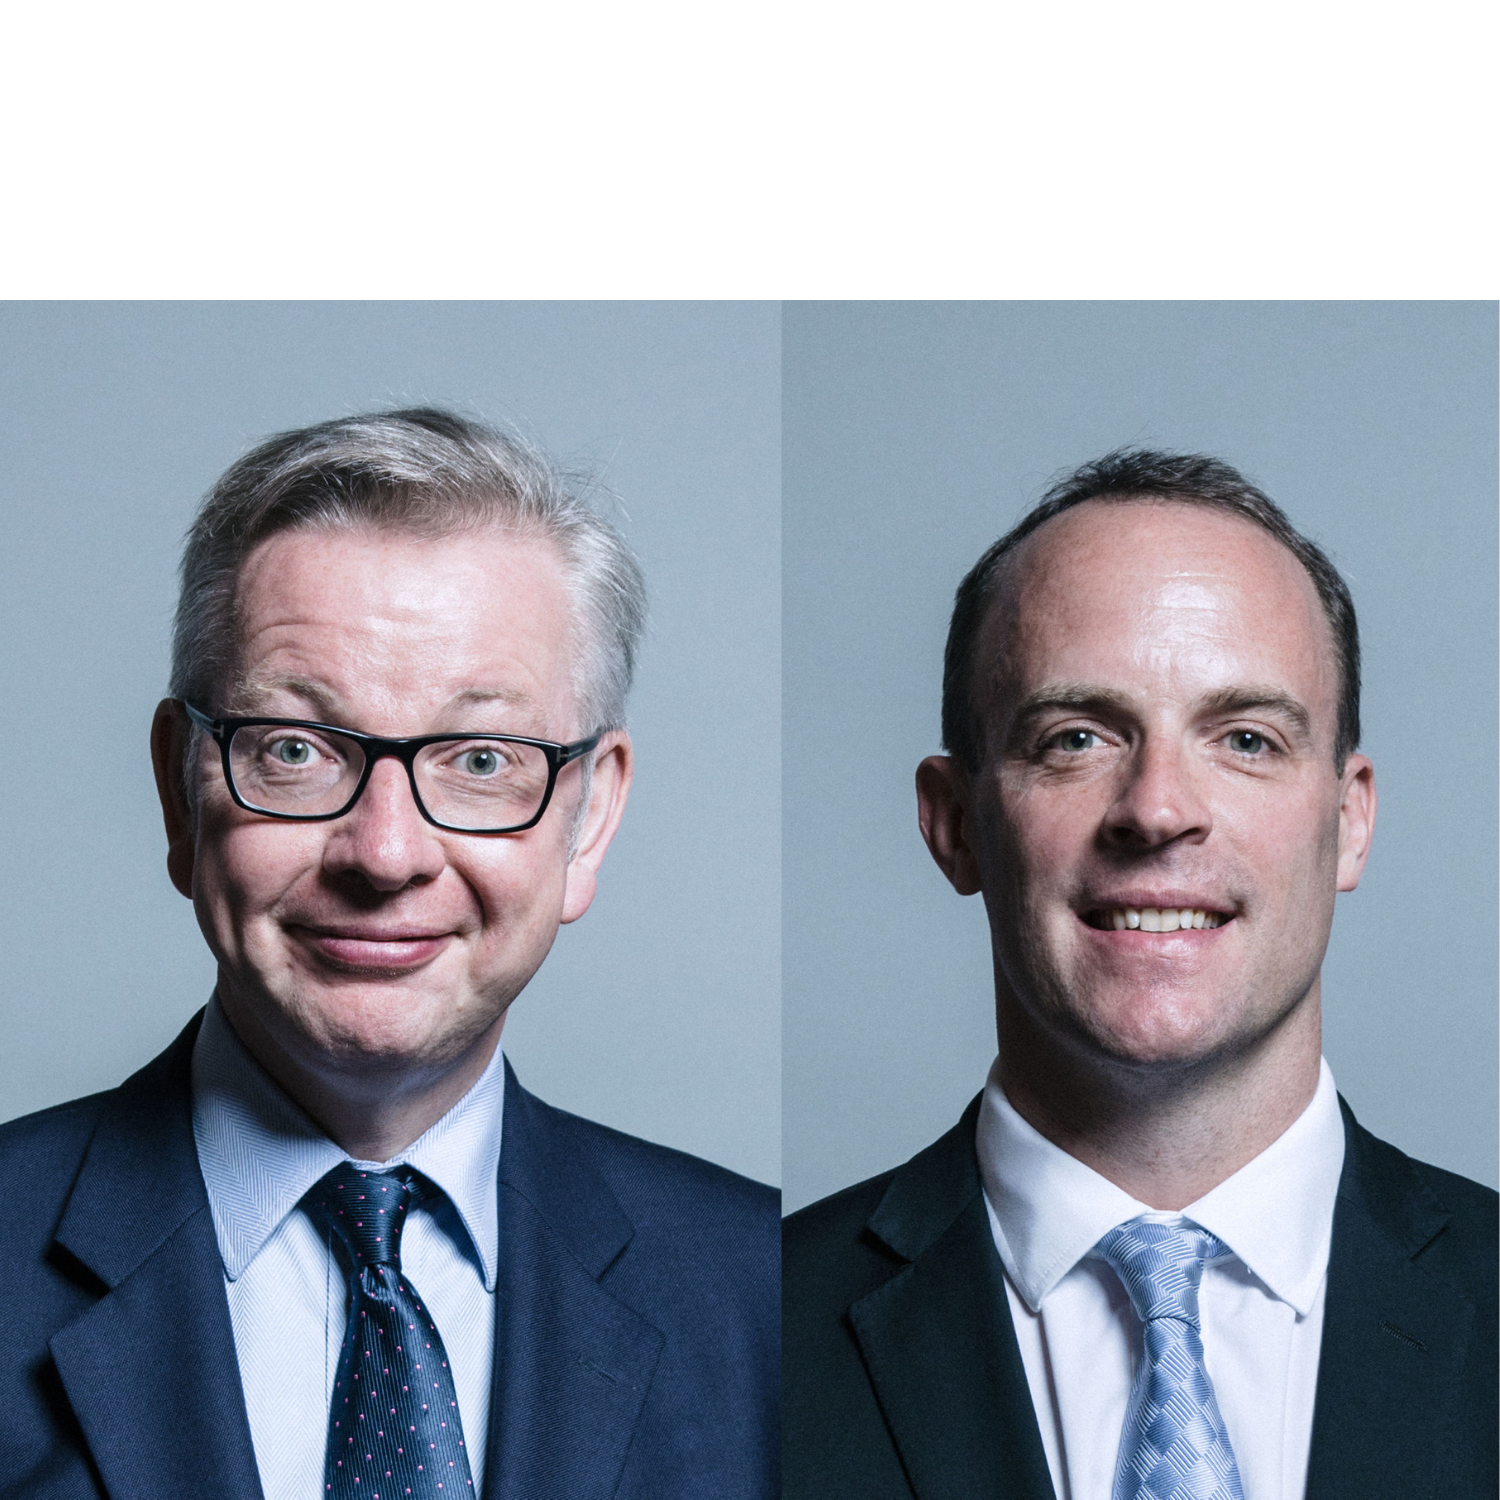 Head shots of Michael Gove and Dominic Raab, two men in suits, with blue ties, smiling at camera